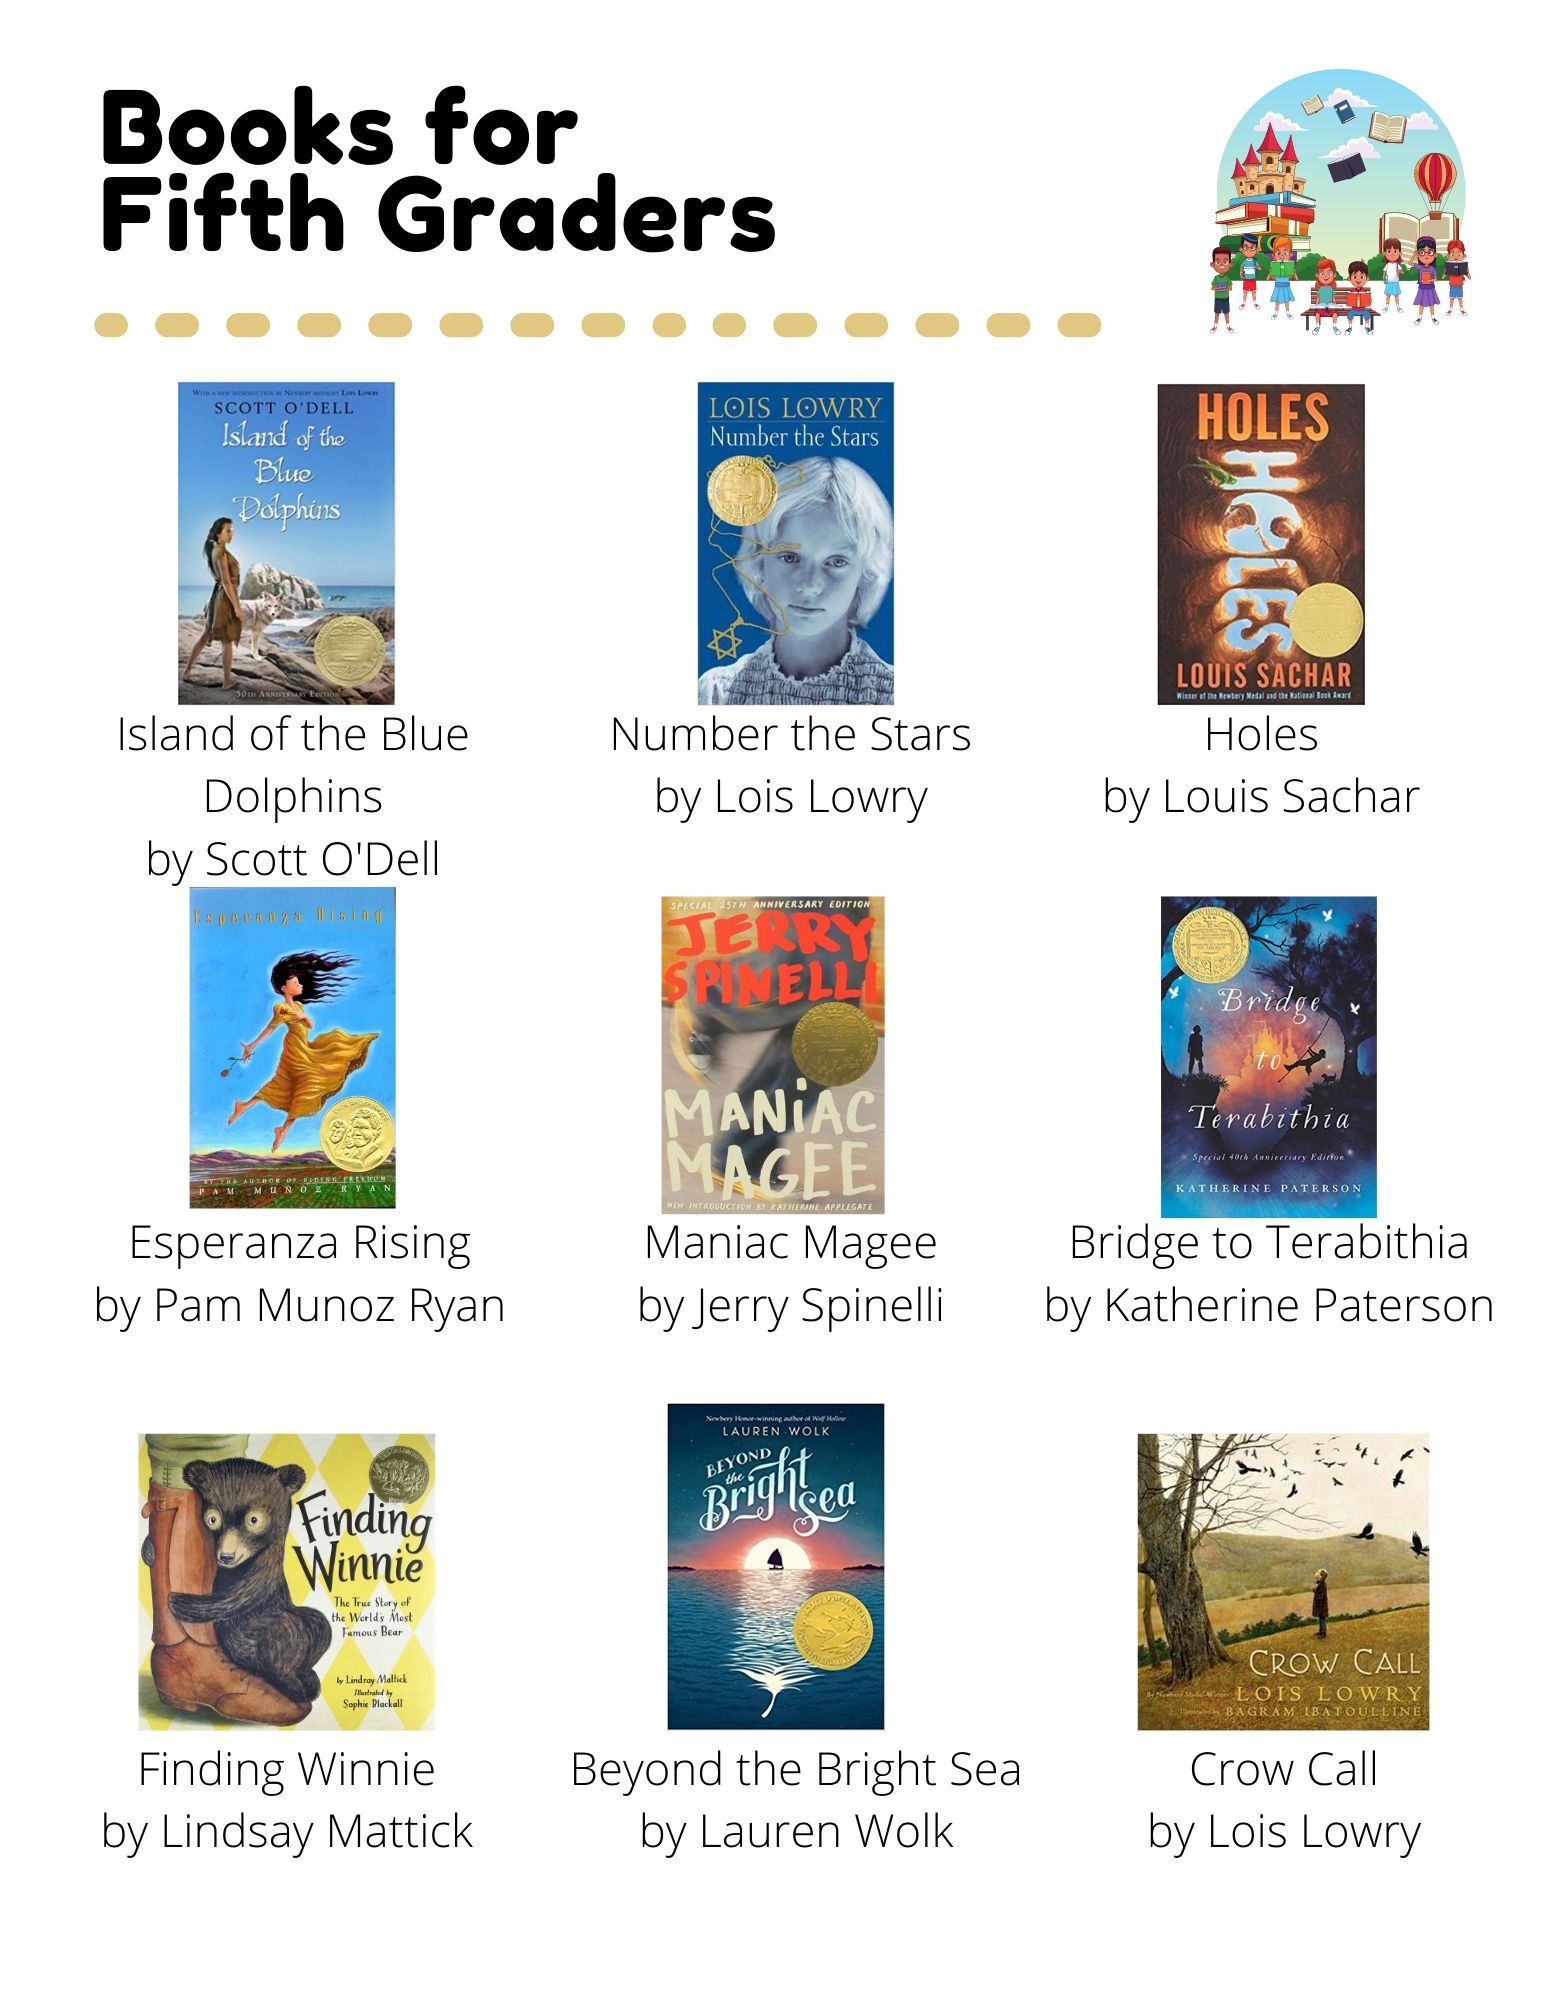 Books for Fifth Graders: Island of the Blue Dolphins by Scott O'Dell. Number the Stars by Lois Lowry. Holes by Louis Sachar. Esperanza Rising by Pam Munoz Ryan. Maniac Magee by Jerry Spinelli. Bridge to Terabithia by Katherine Paterson. Finding Winnie by Lindsay Mattick. Beyond the Bright Sea by Lauren Wolk. Crow Call by Lois Lowry. Awkward by Svetlana Chmakova. Bravo! by Margarita Engle. The Magician's Elephant by Kate DiCamillo. The City of Ember by Jeanne DuPrau. The Fairy Tale Detectives by Michael Buckle. The First Rule of Punk by Celia C. Perez. Twelve Days in May by Larry Dane Brimner. Frindle by Andrew Clements. The Invention of  Hugo Cabret by Brian Selznick. One Crazy Summer by Rita Williams-Garcia. The Giver by Lois Lowry. Tristan Strong Punches a Hole in the Sky by Kwame Mbalia.y